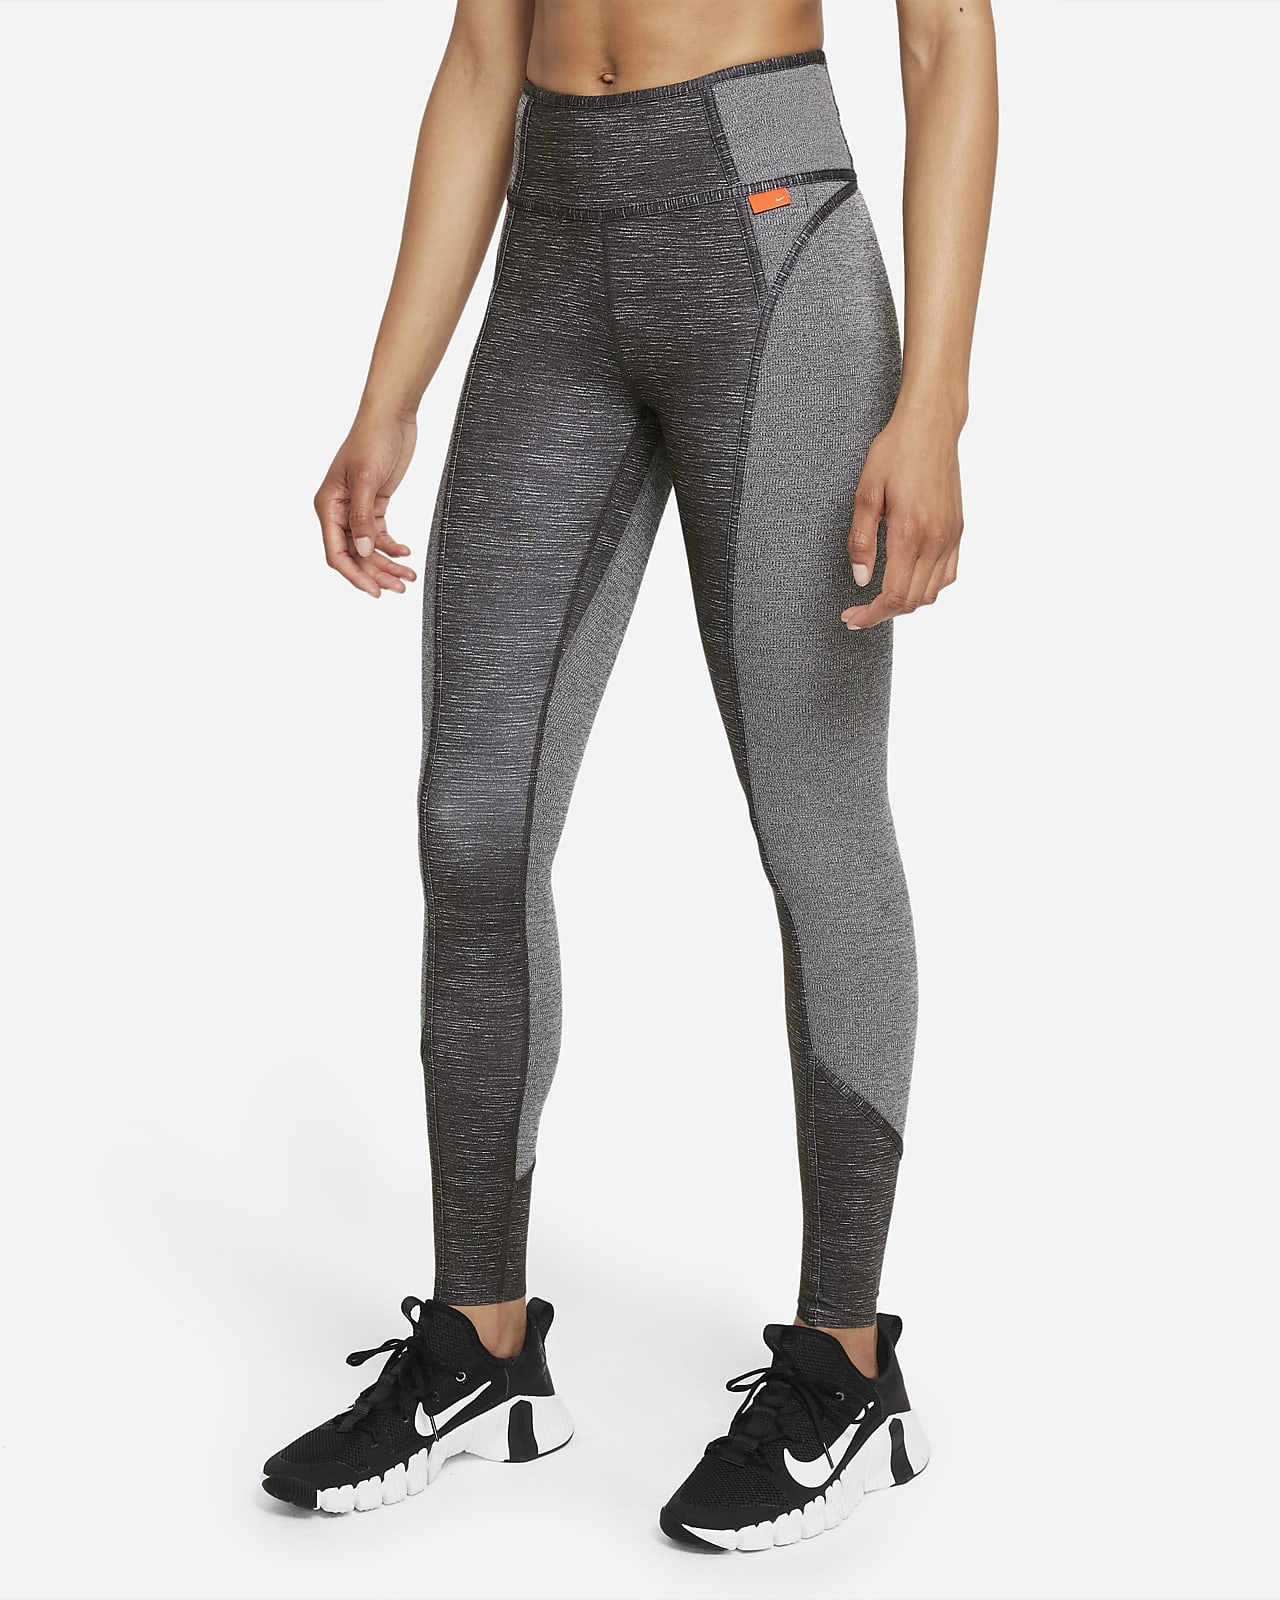 Legging chiné taille mi-basse Nike Dri-FIT One Luxe pour Femme